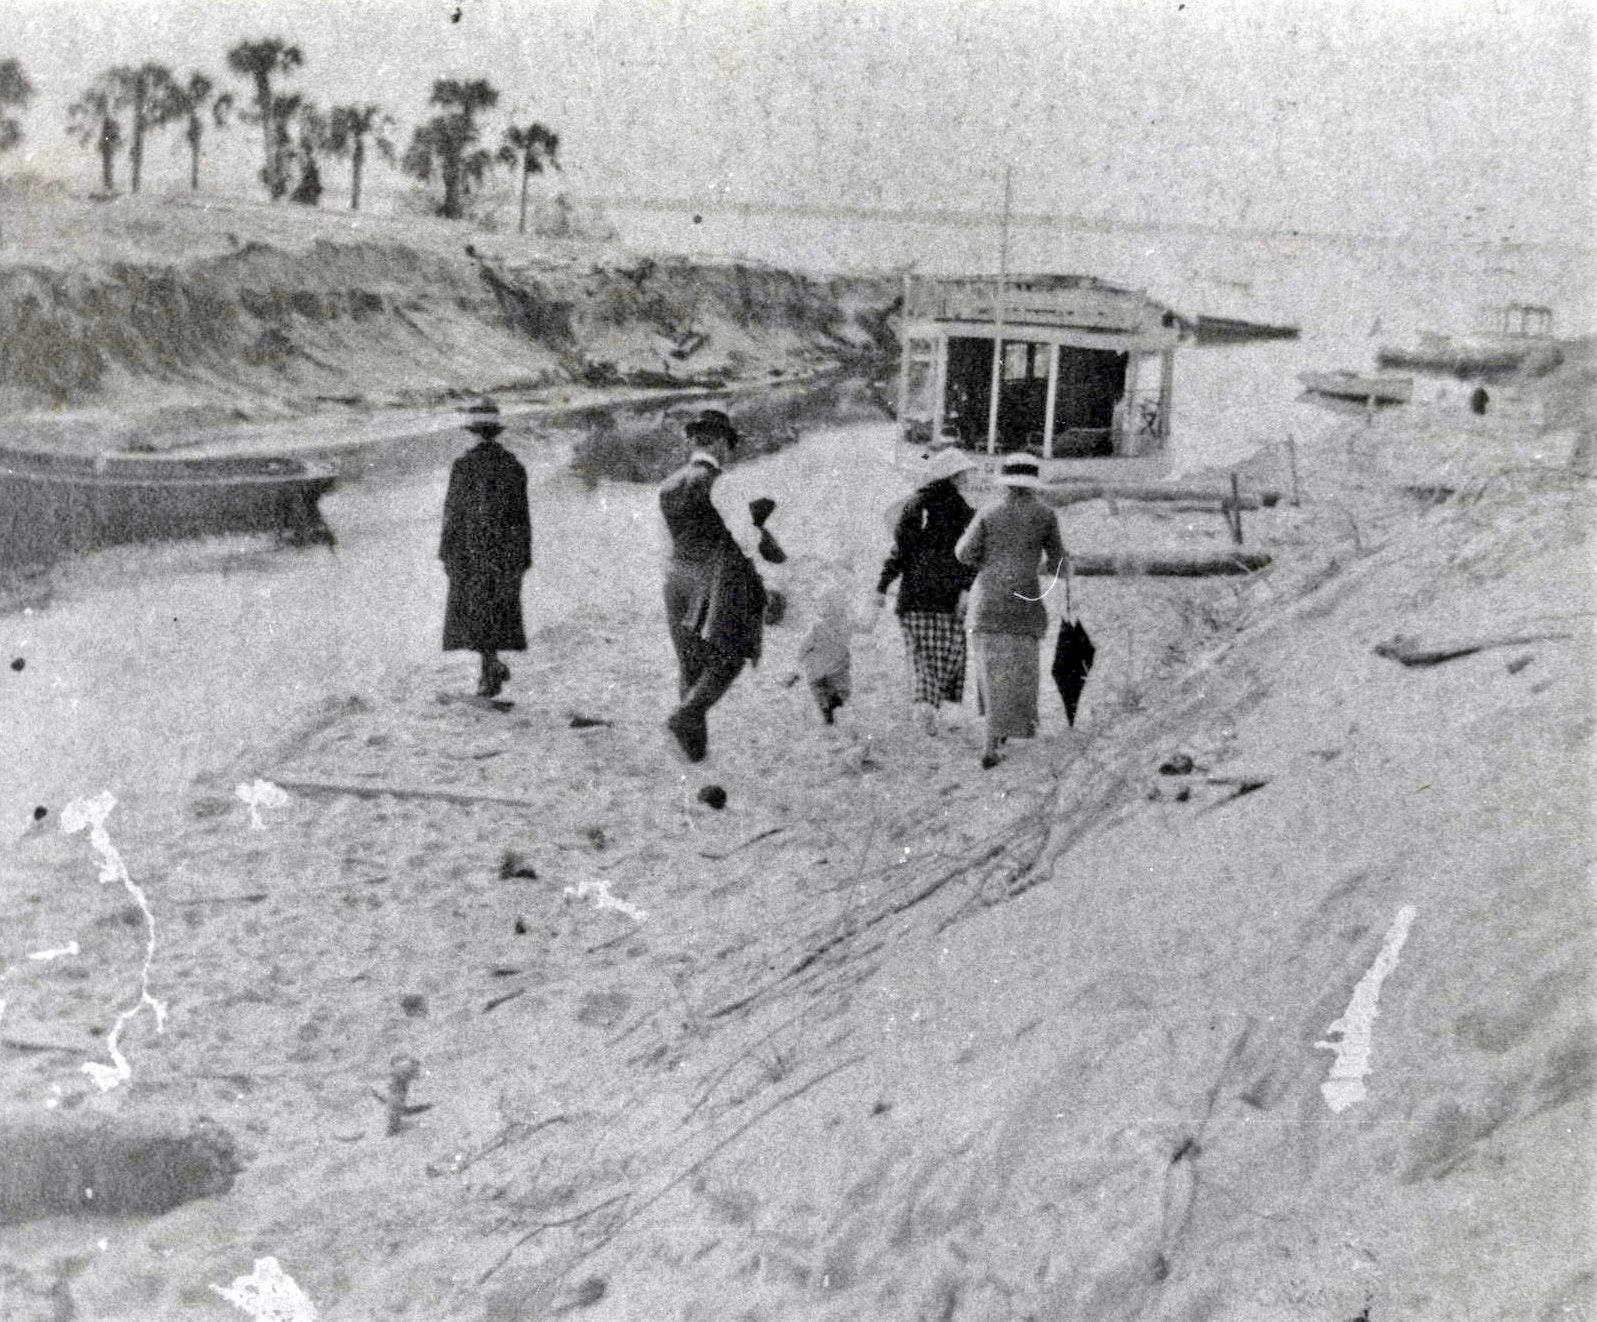 historical photo from January 1919 showing local residents walking at the inlet